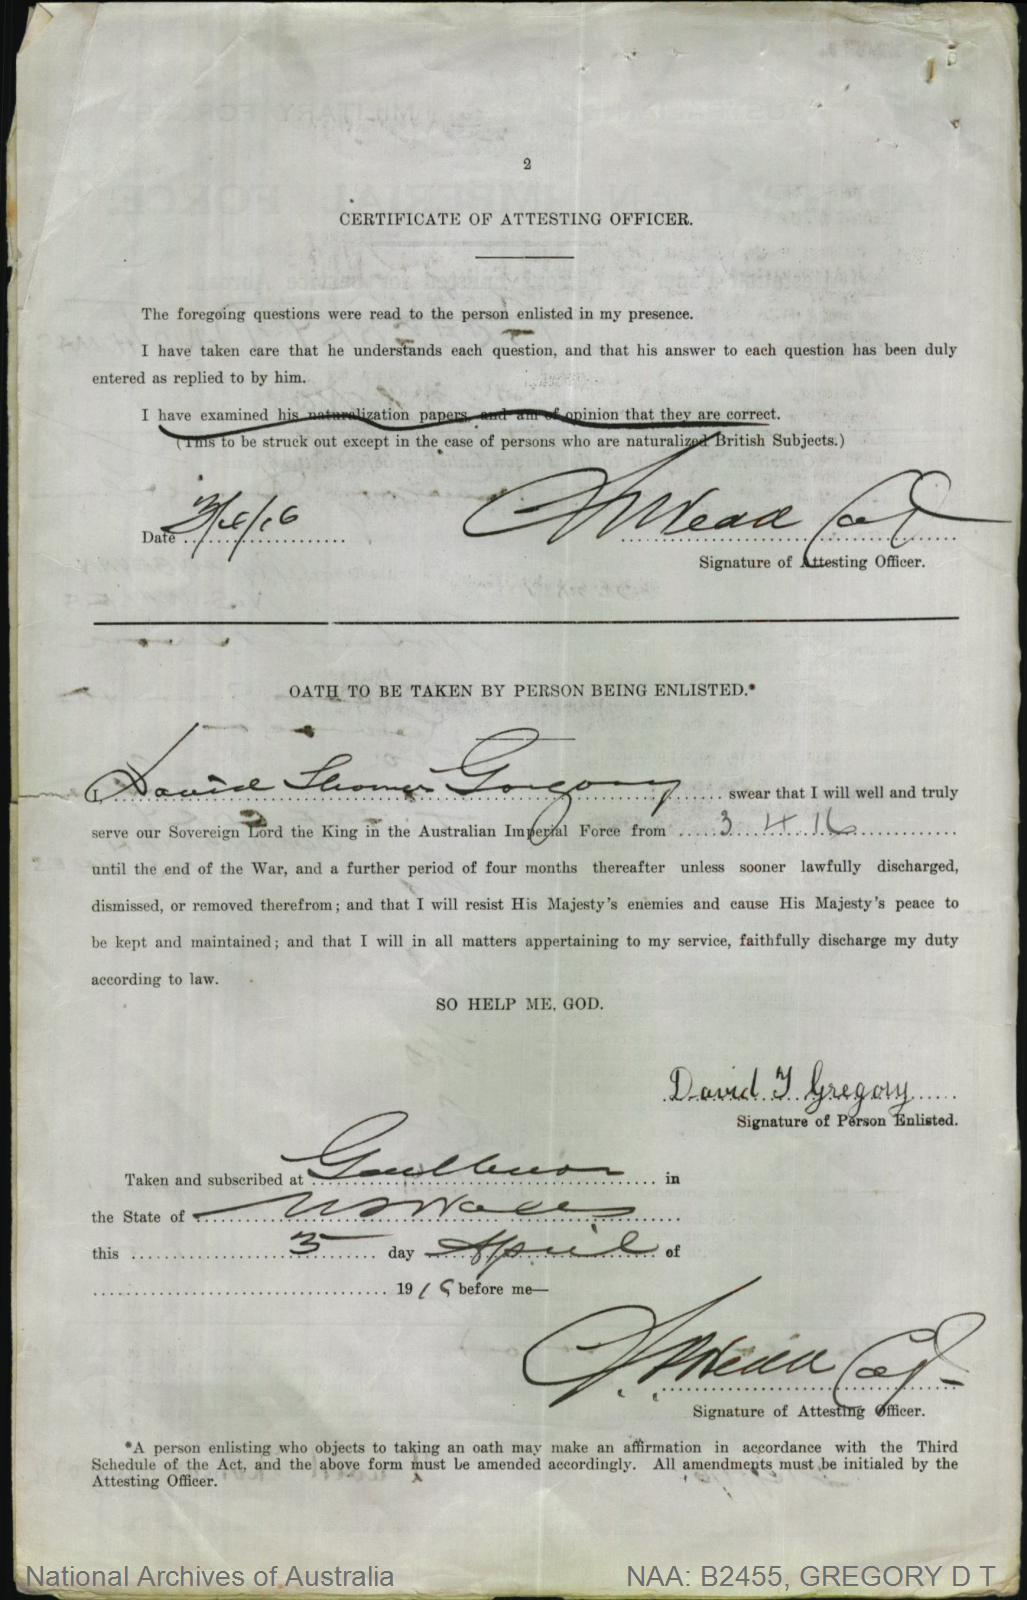 GREGORY David Thomas : Service Number - 2515 : Place of Birth - Queanbeyan NSW : Place of Enlistment - Goulburn NSW : Next of Kin - (Father) GREGORY Thomas